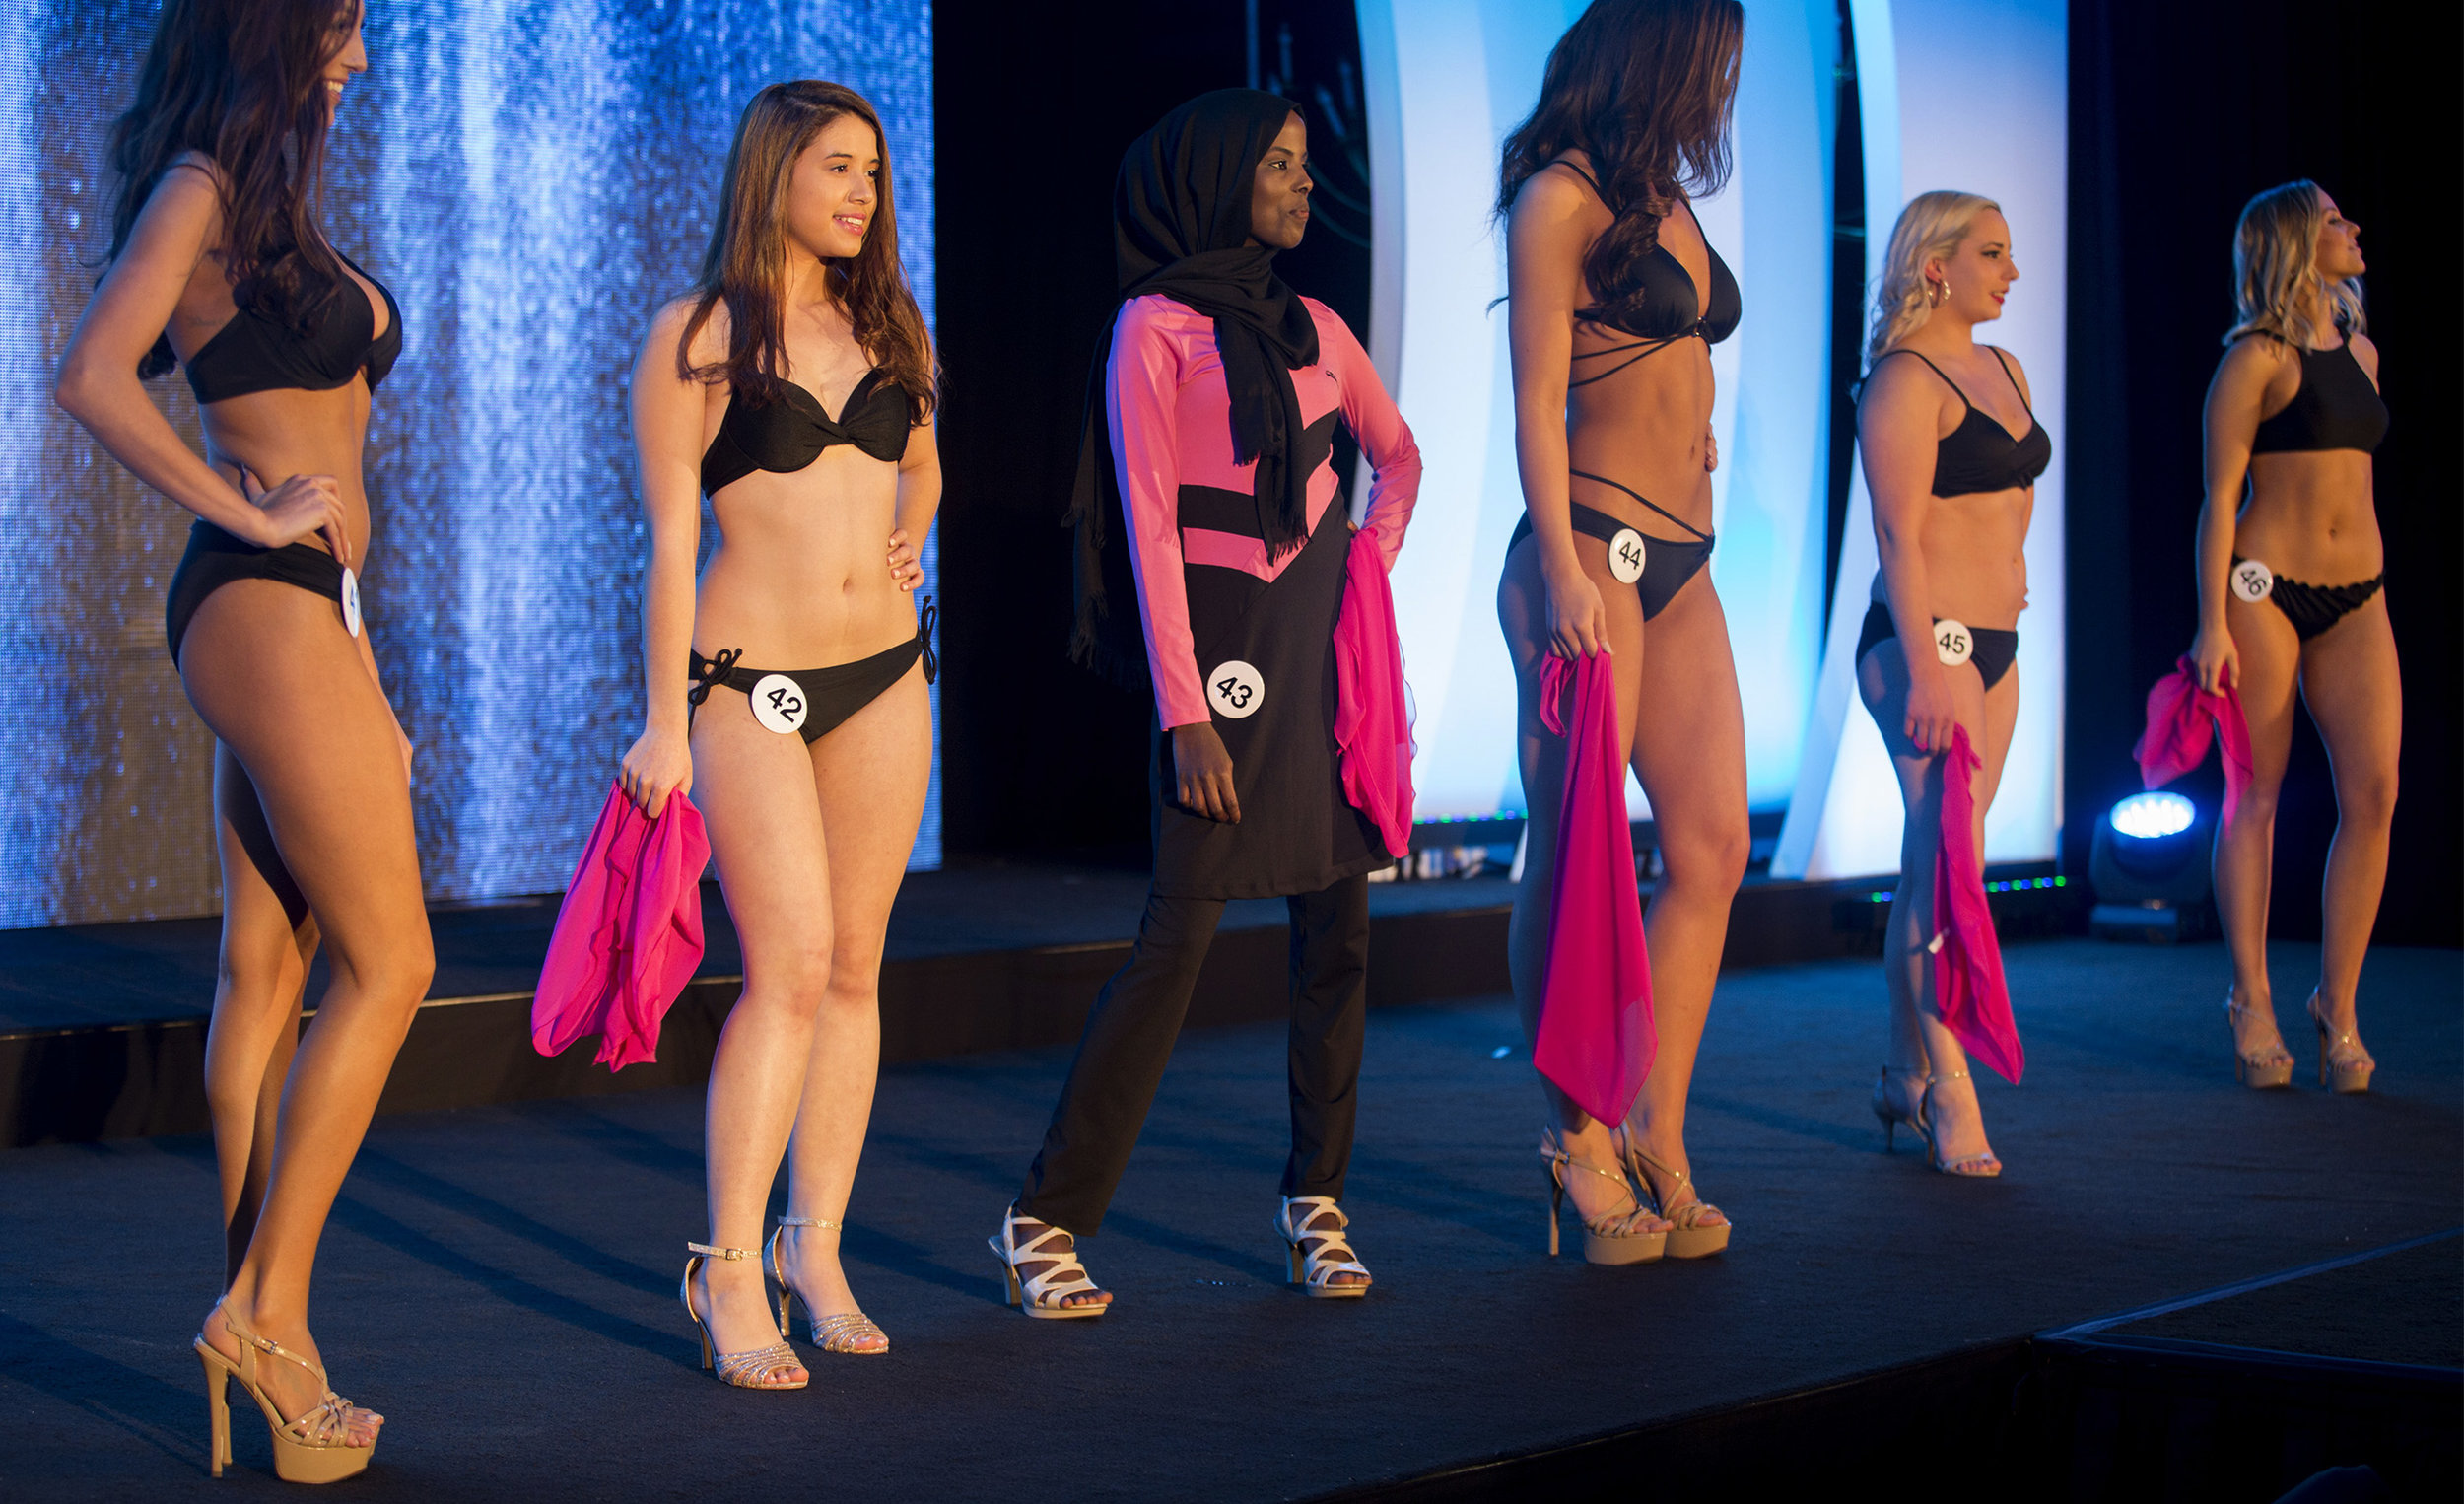 Ahmed dons her burkini during the swimsuit portion of the competition.